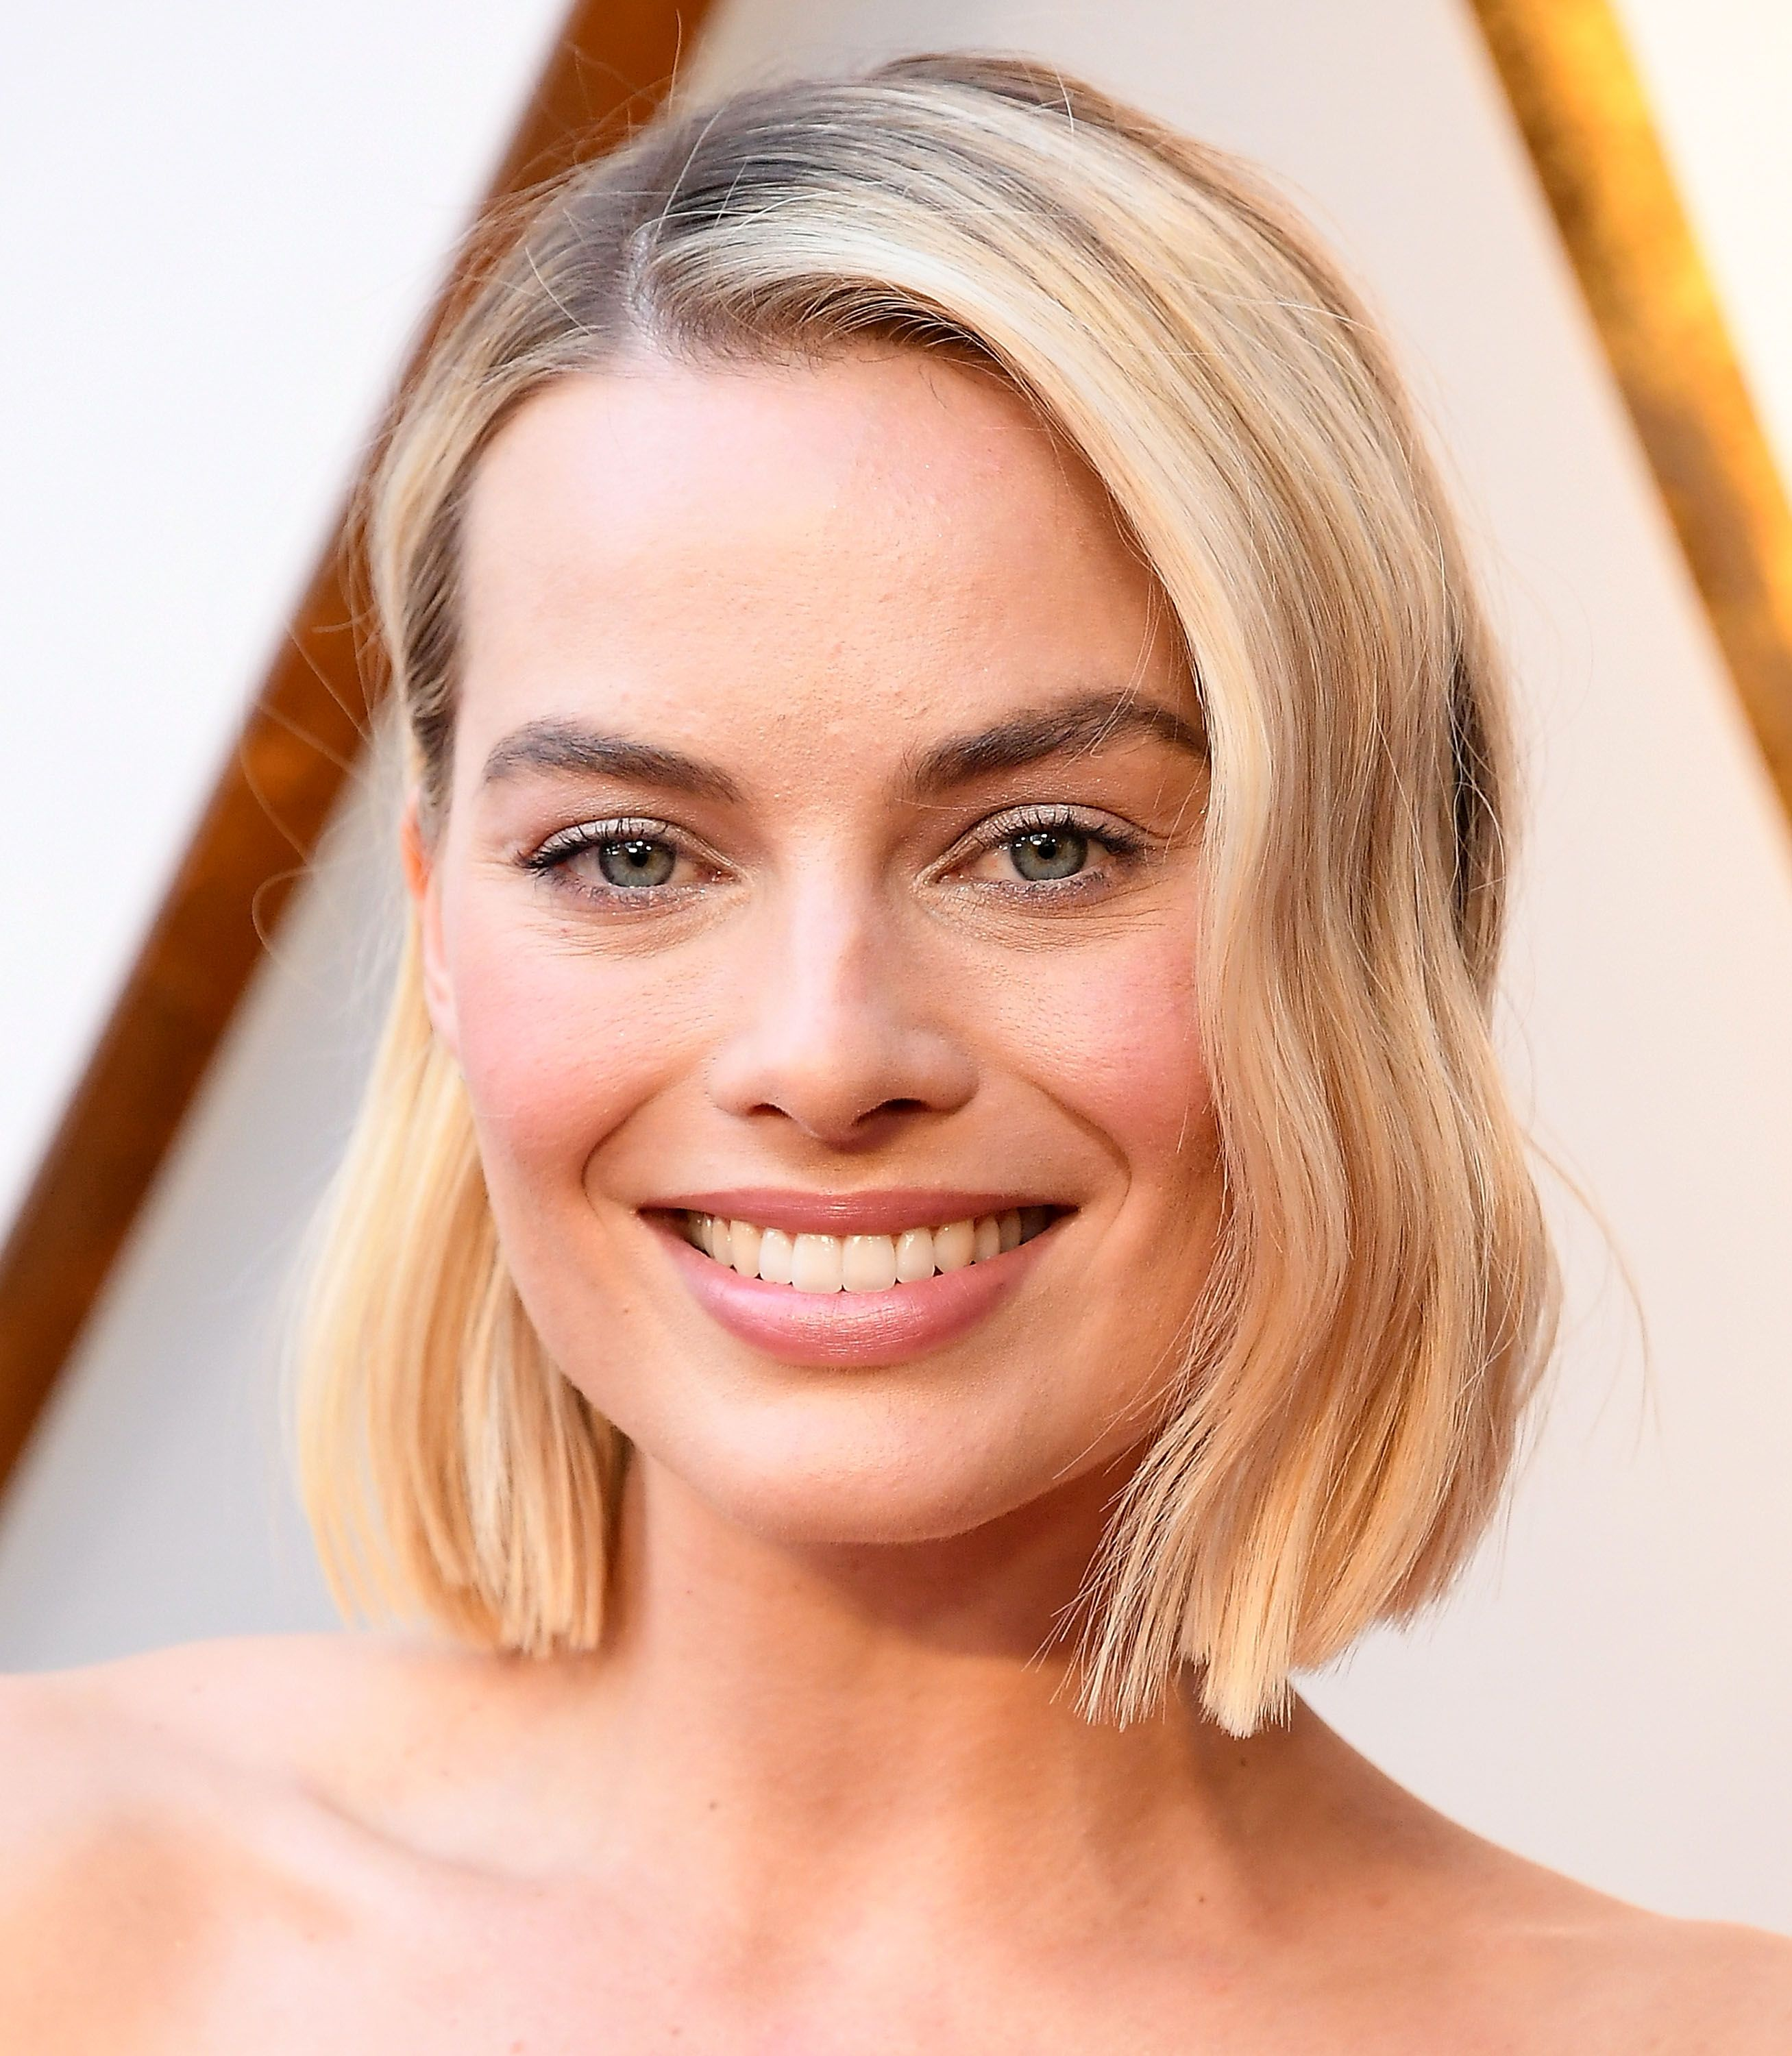 HOW-TO: Margot Robbie's Oscar Hairstyle by Moroccanoil Celebrity Hairstylist Bryce Scarlett